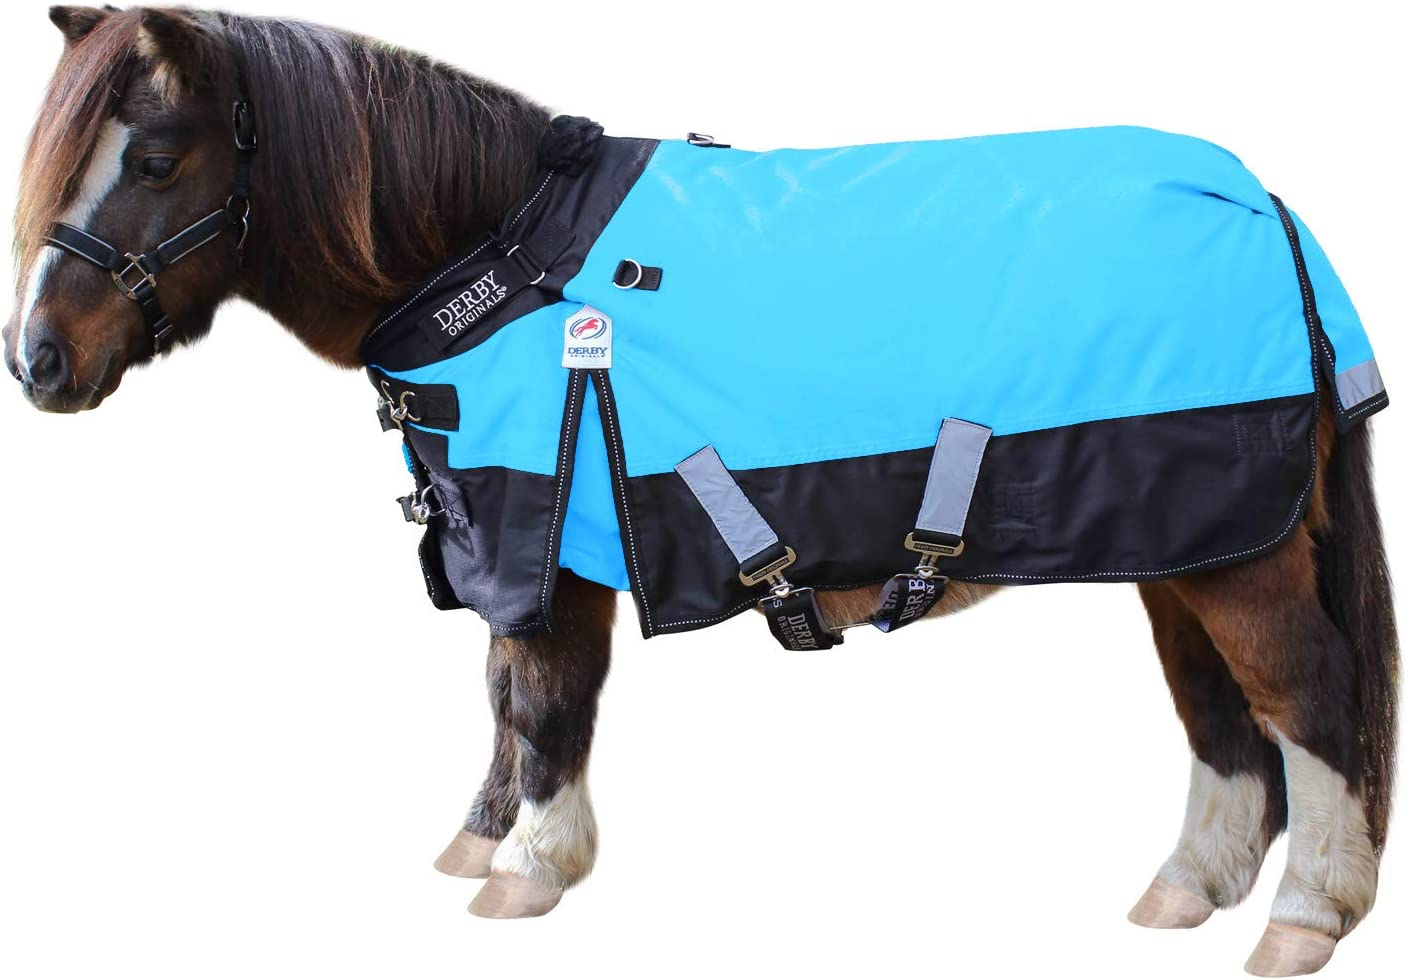 Derby Originals Classic Nordic-Tough 600D Ripstop Waterproof Winter Mediumweight Mini Horse & Pony Turnout Blankets with 200g Insulation and One Year Warranty Reflective Sky Blue